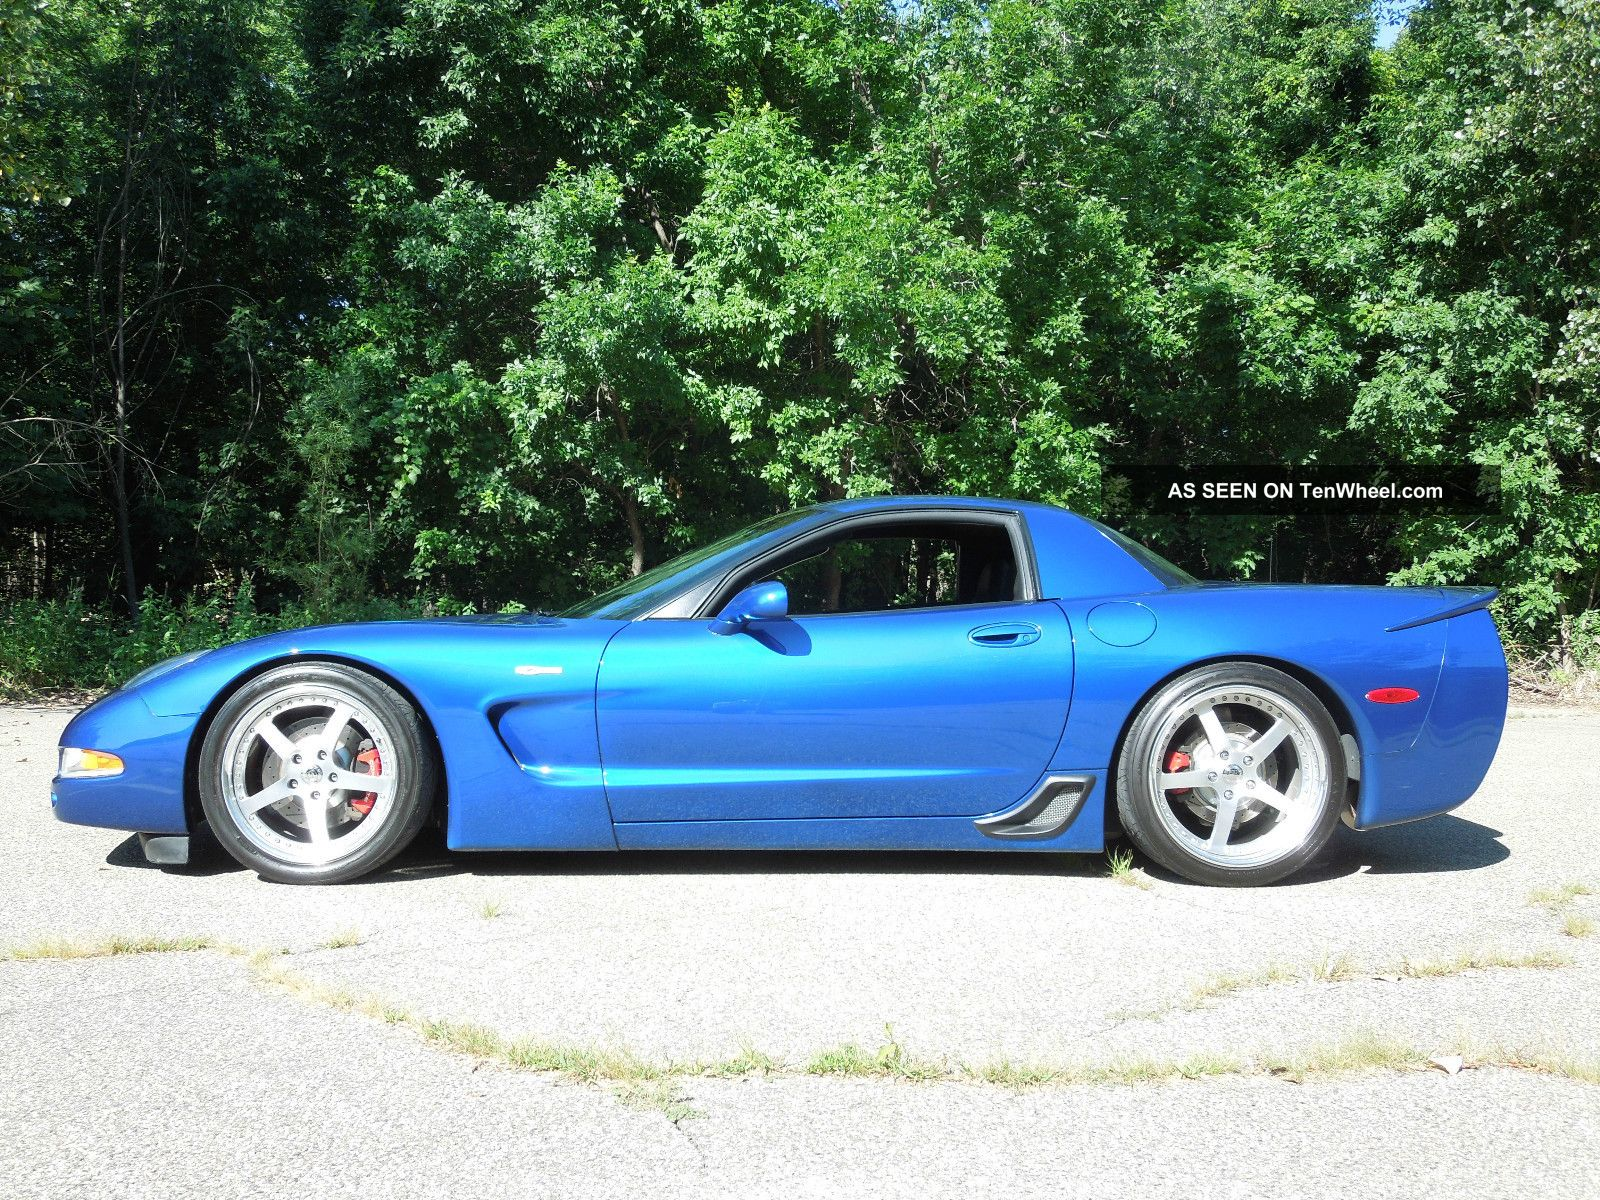 2002 corvette z06 520 rwhp 2010 mercedes benz e350 coupe owners manual Mercedes-Benz GLE Coupe